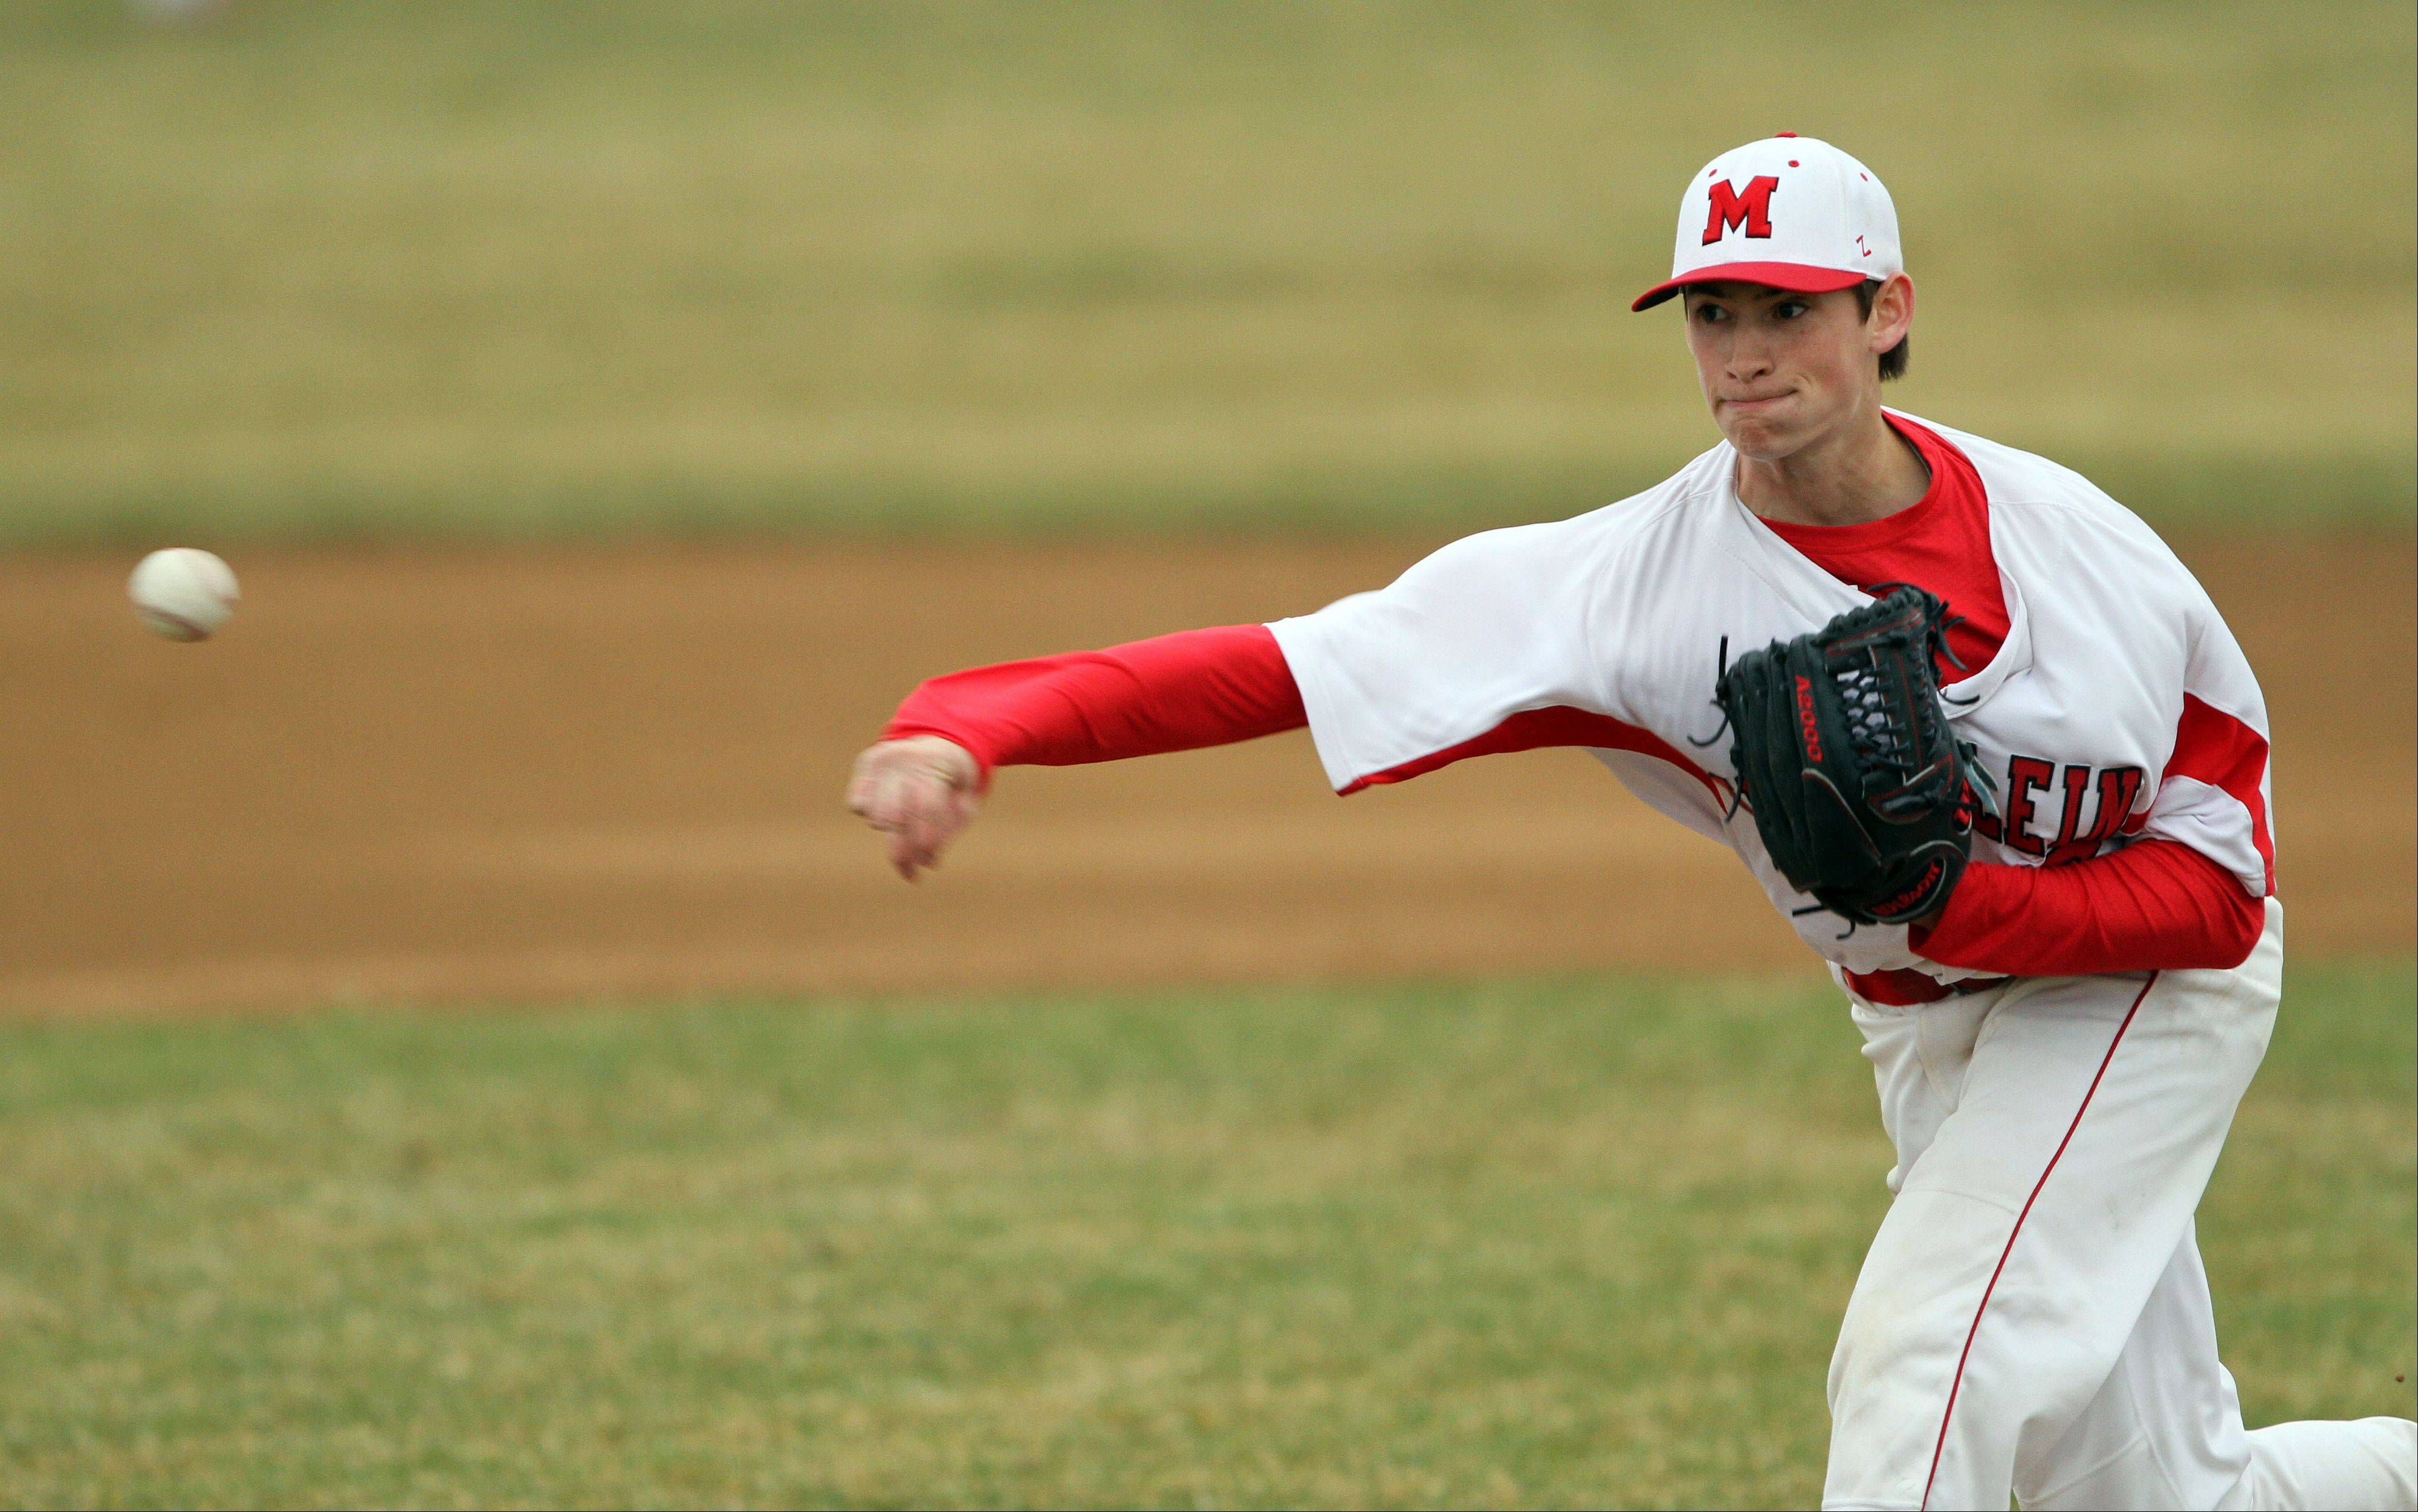 Mundelein's Mitch Schulewitz pitches to Lake Zurich on Tuesday at Mundelein High School.